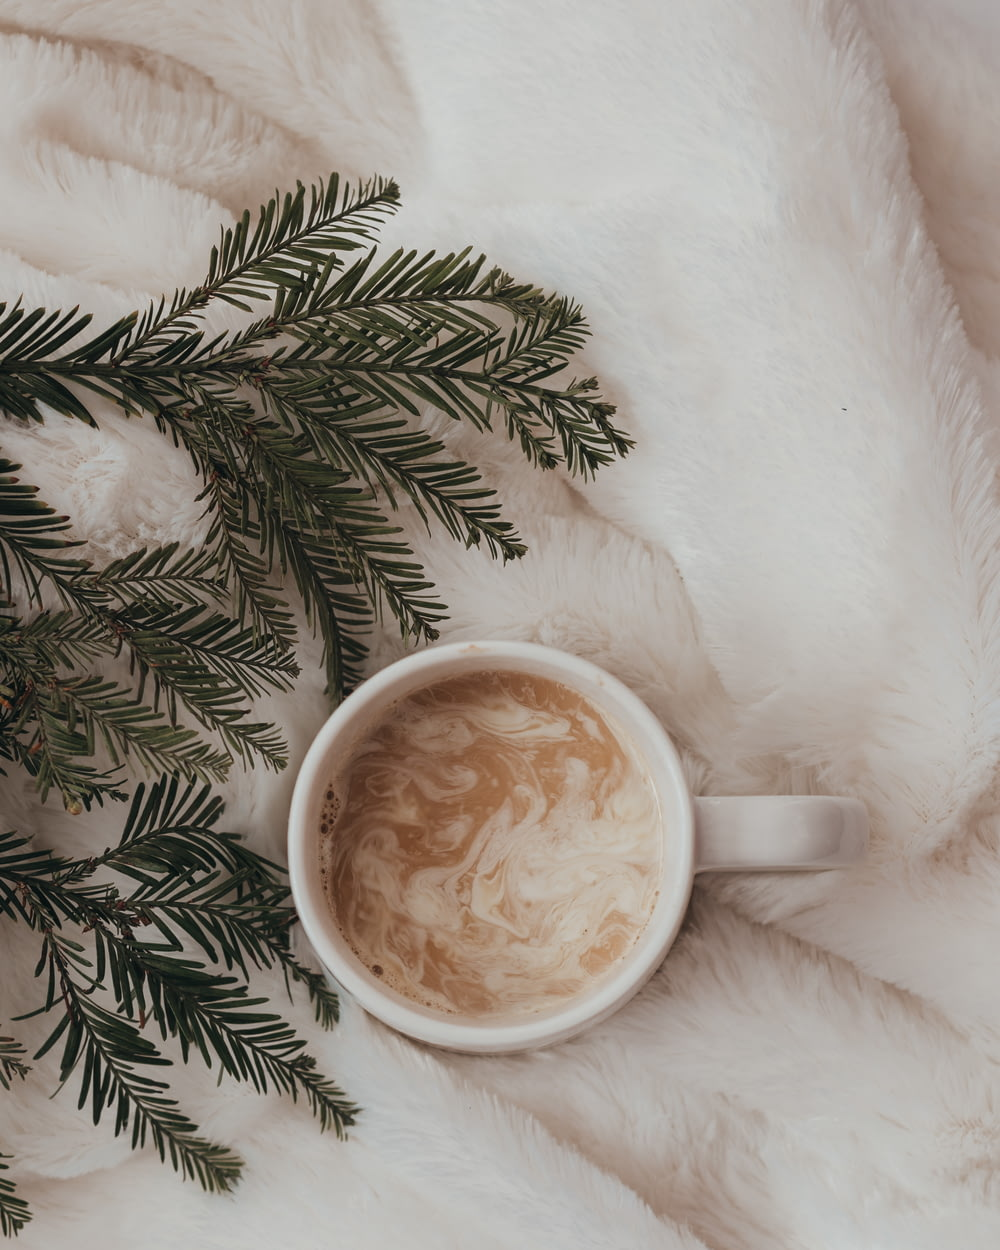 cup of coffee latte on fur textile